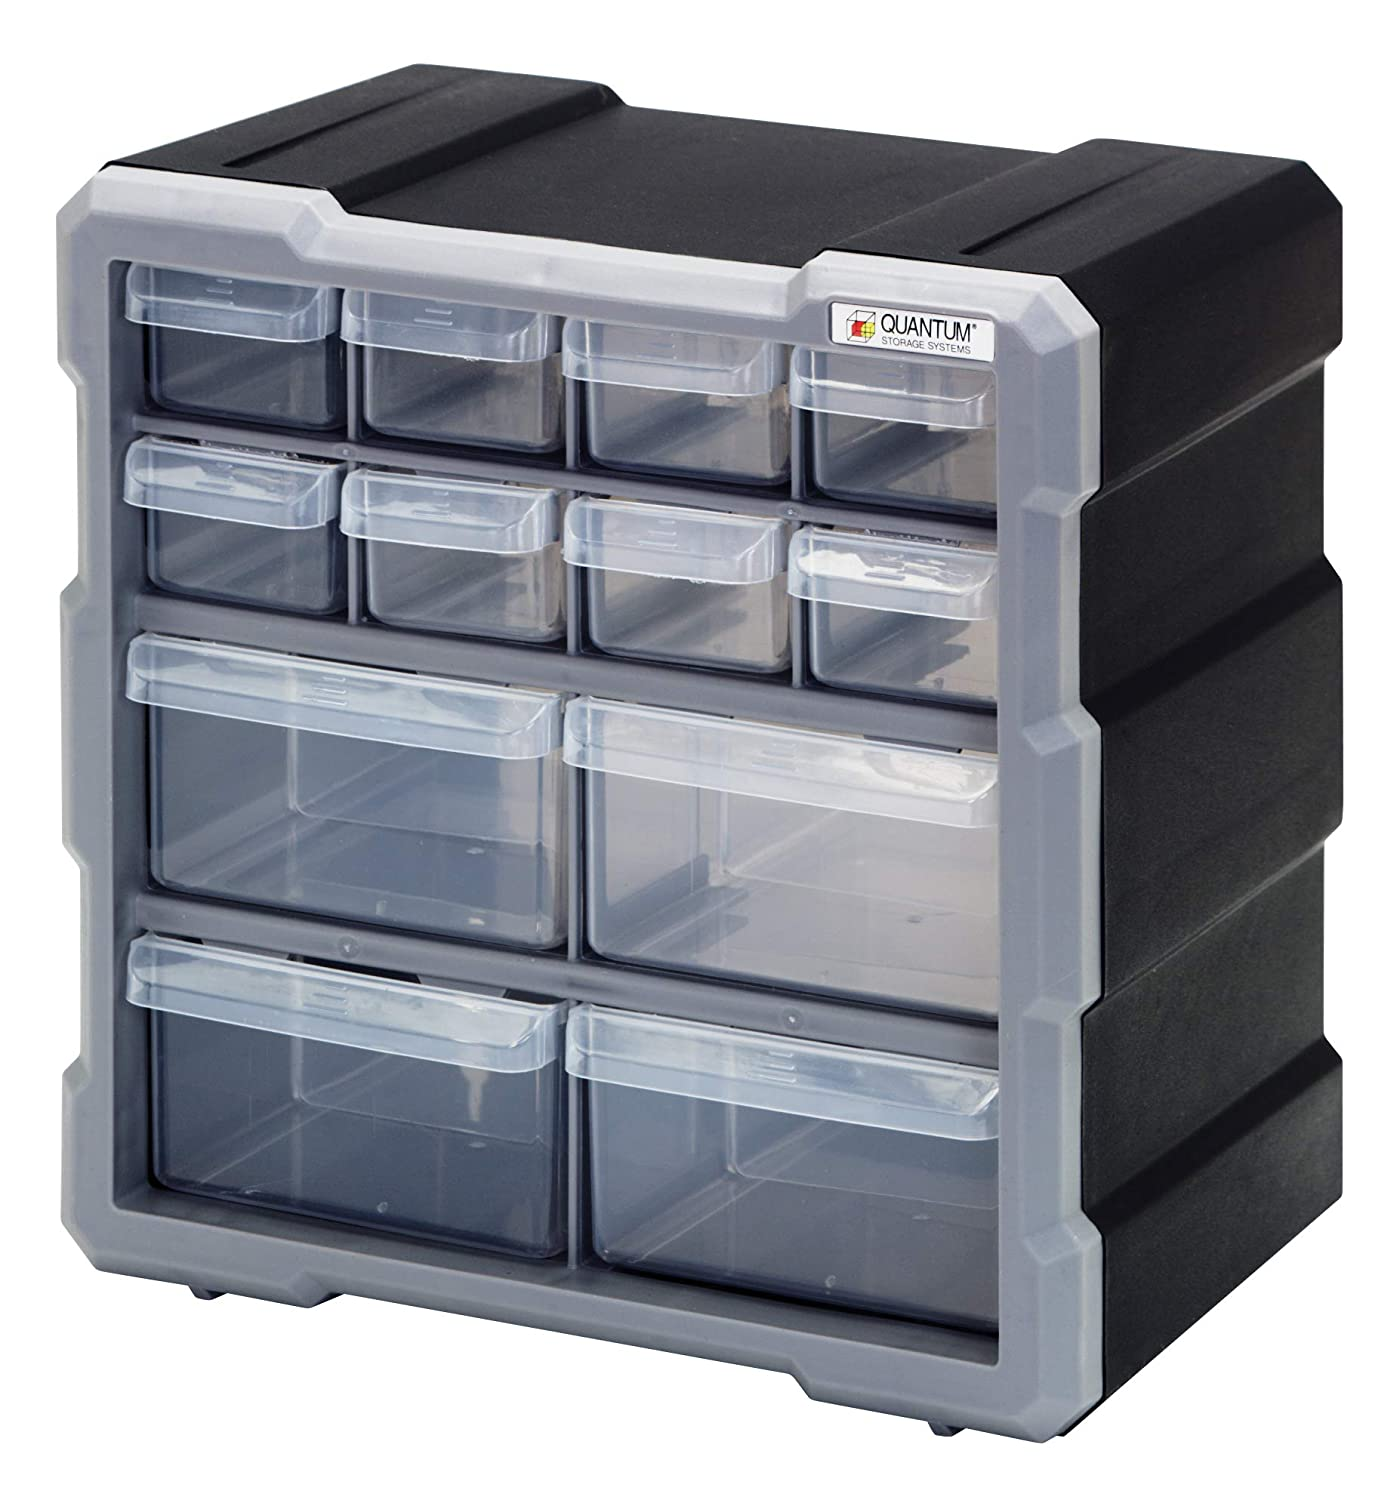 Amazon.com: Quantum Storage Systems PDC 12BK Clear Plastic Drawer Cabinet,  12 Drawers: Industrial U0026 Scientific